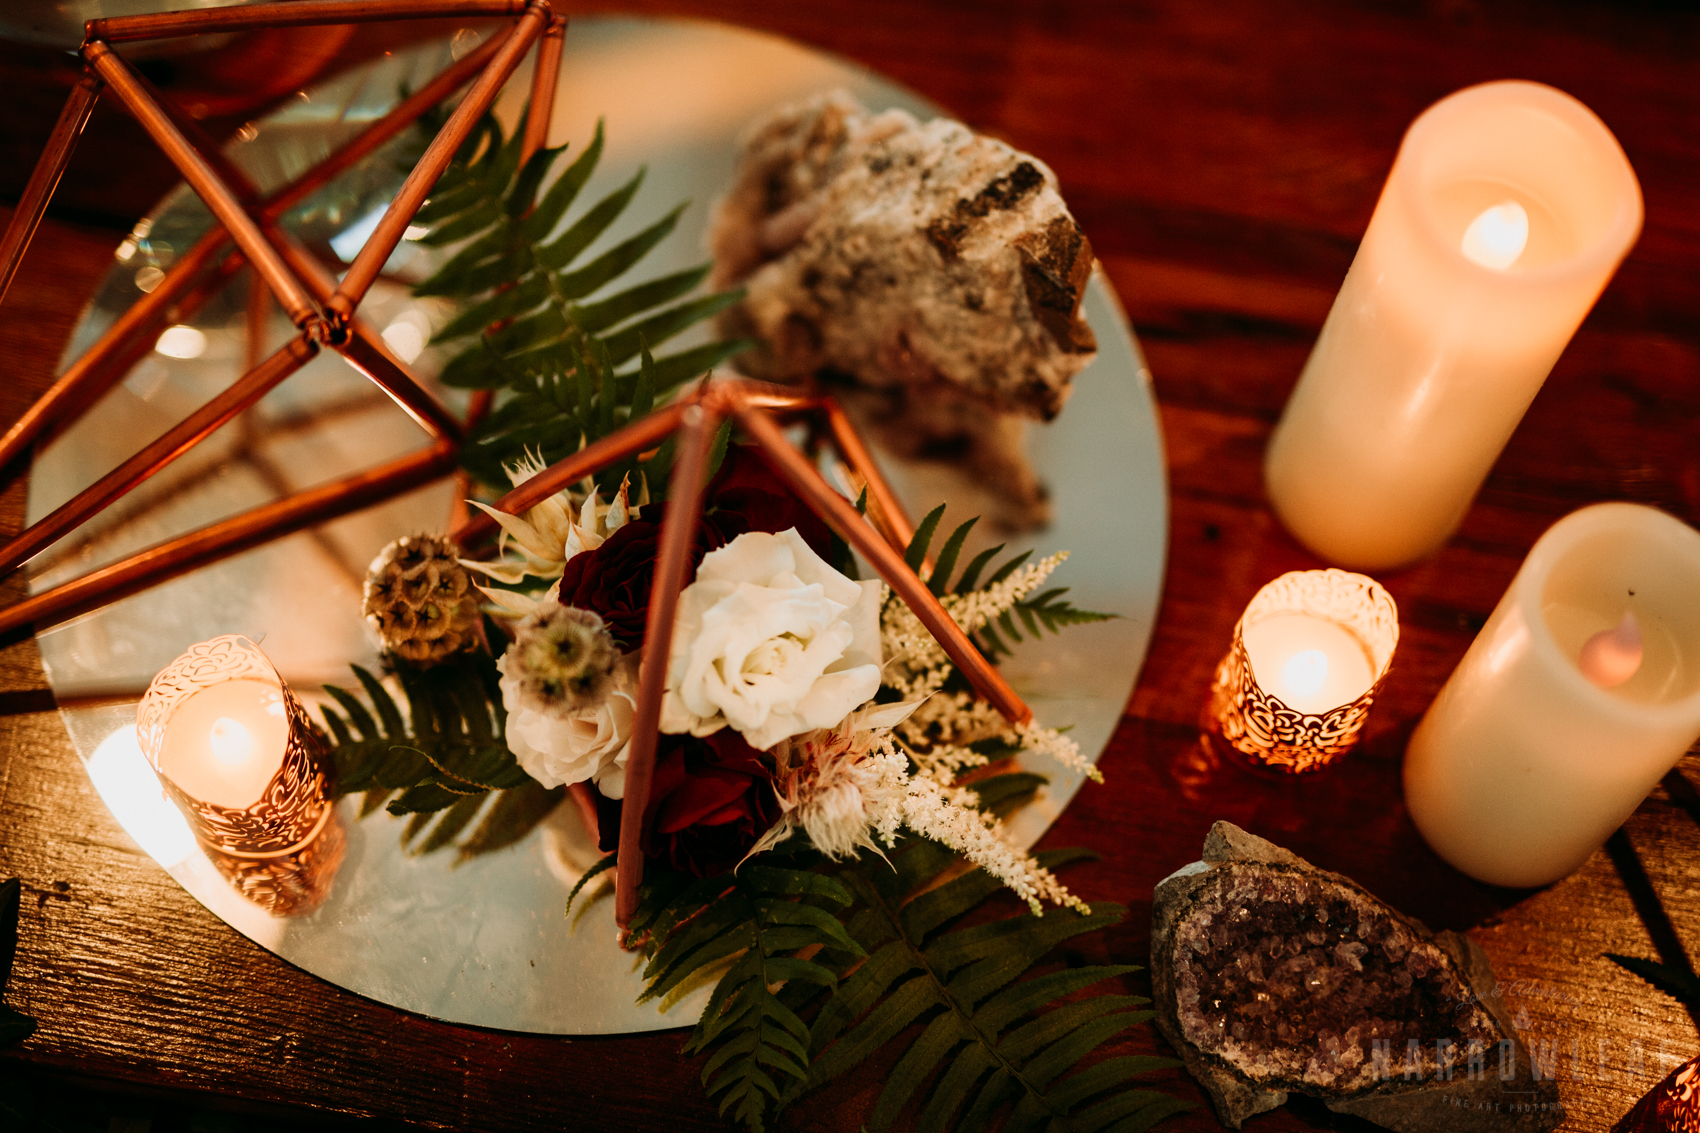 boho-floral-and-copper-wire-amethyst-geode-inspired-wedding-table-decor-candles--3.jpg